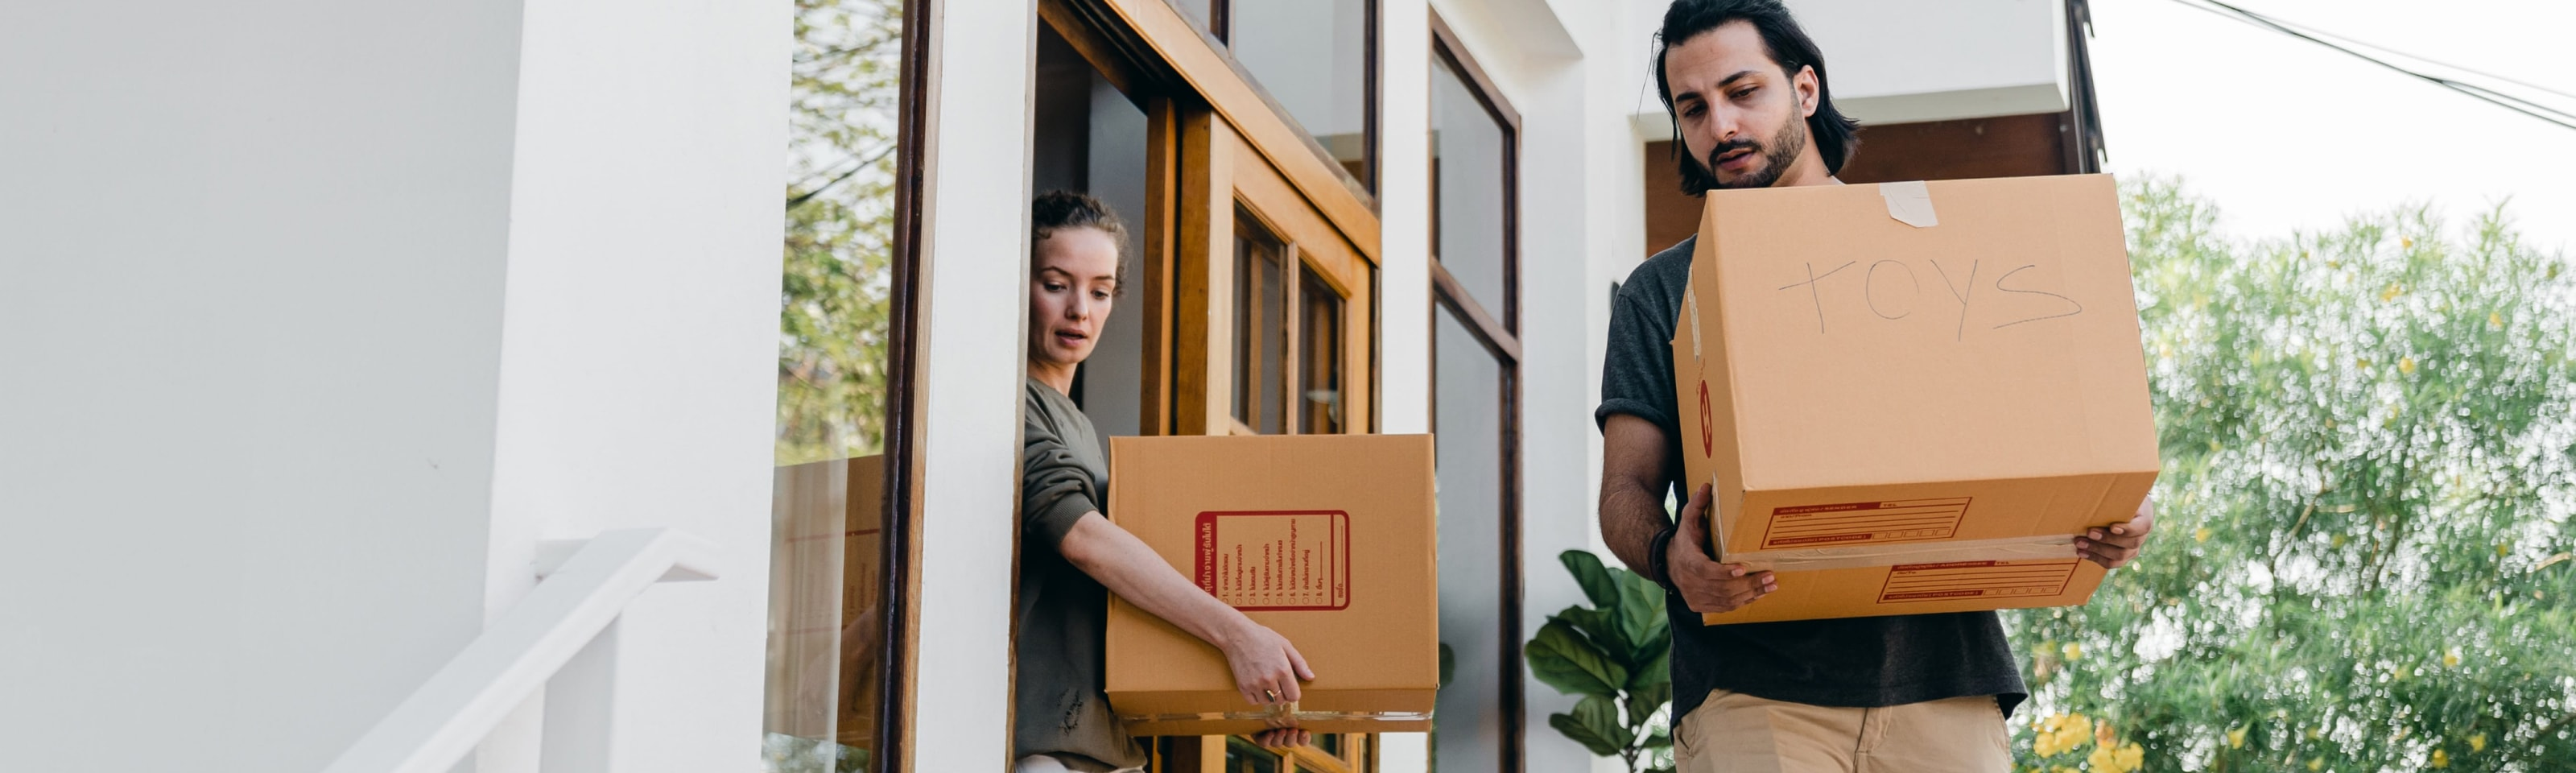 couple carrying boxes while moving out of home